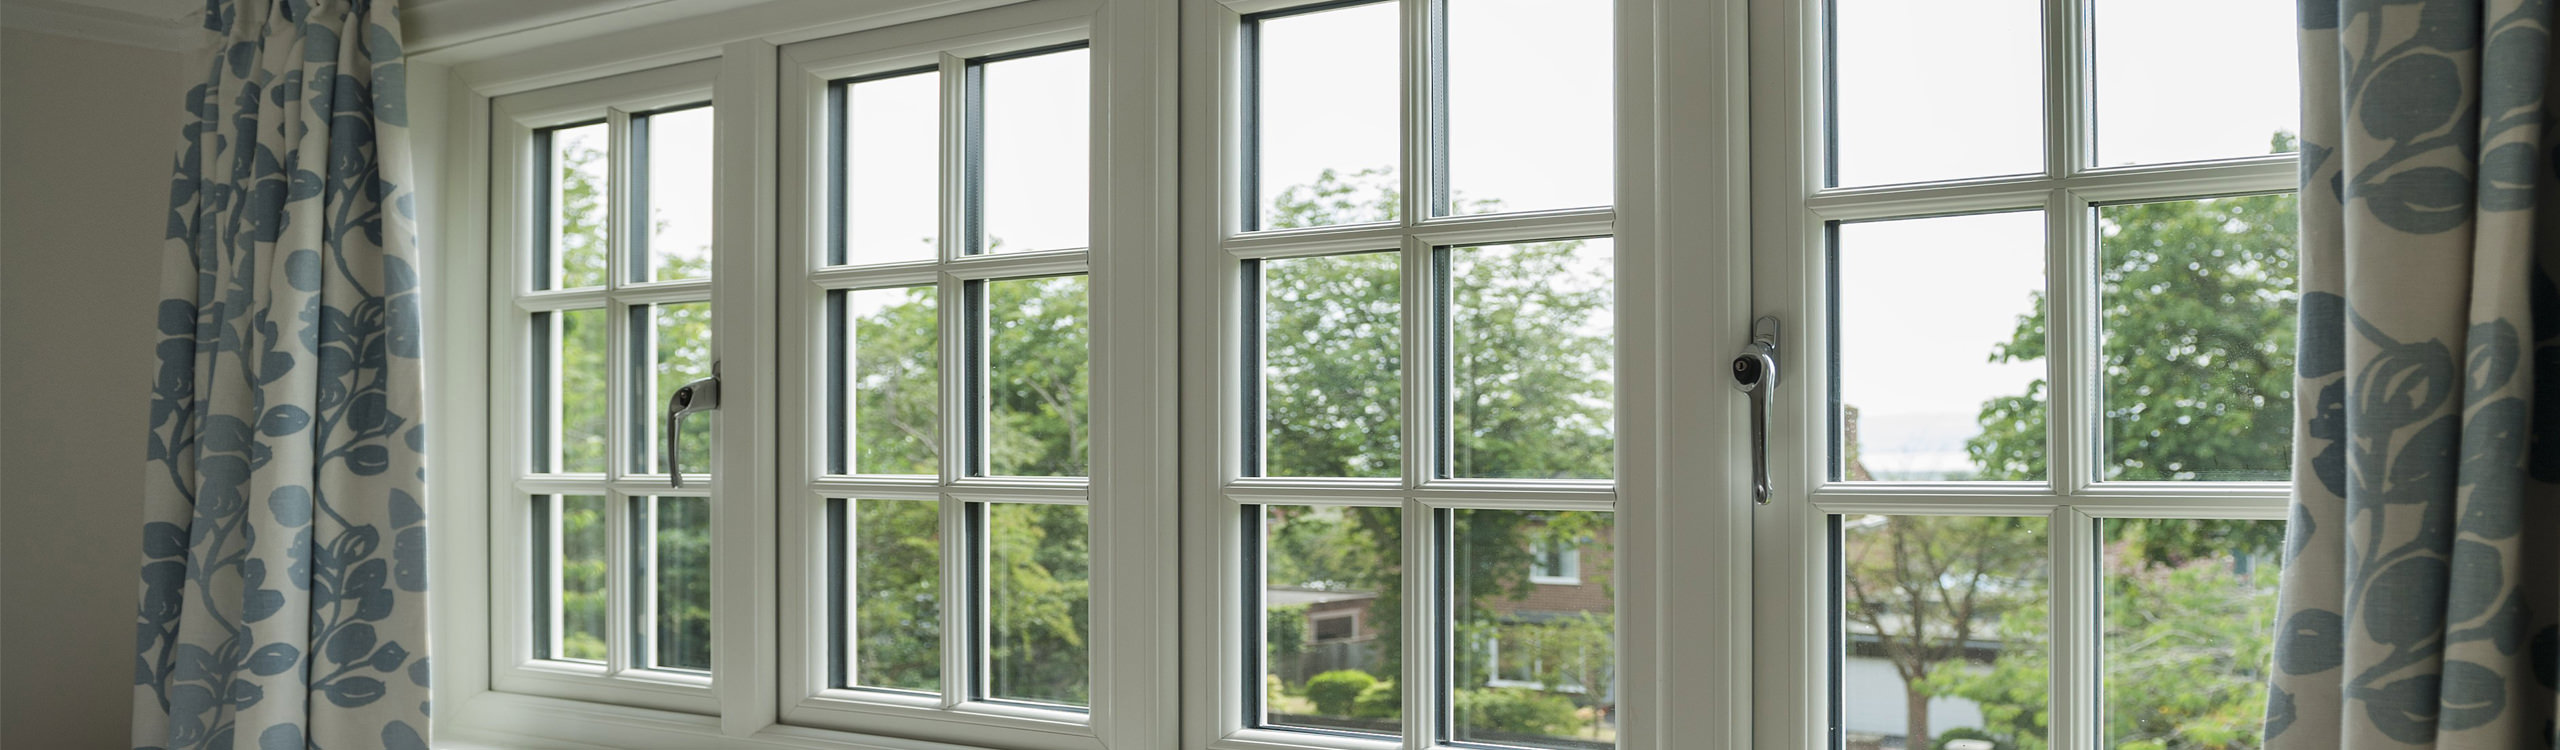 Double glazed windows Harrogate